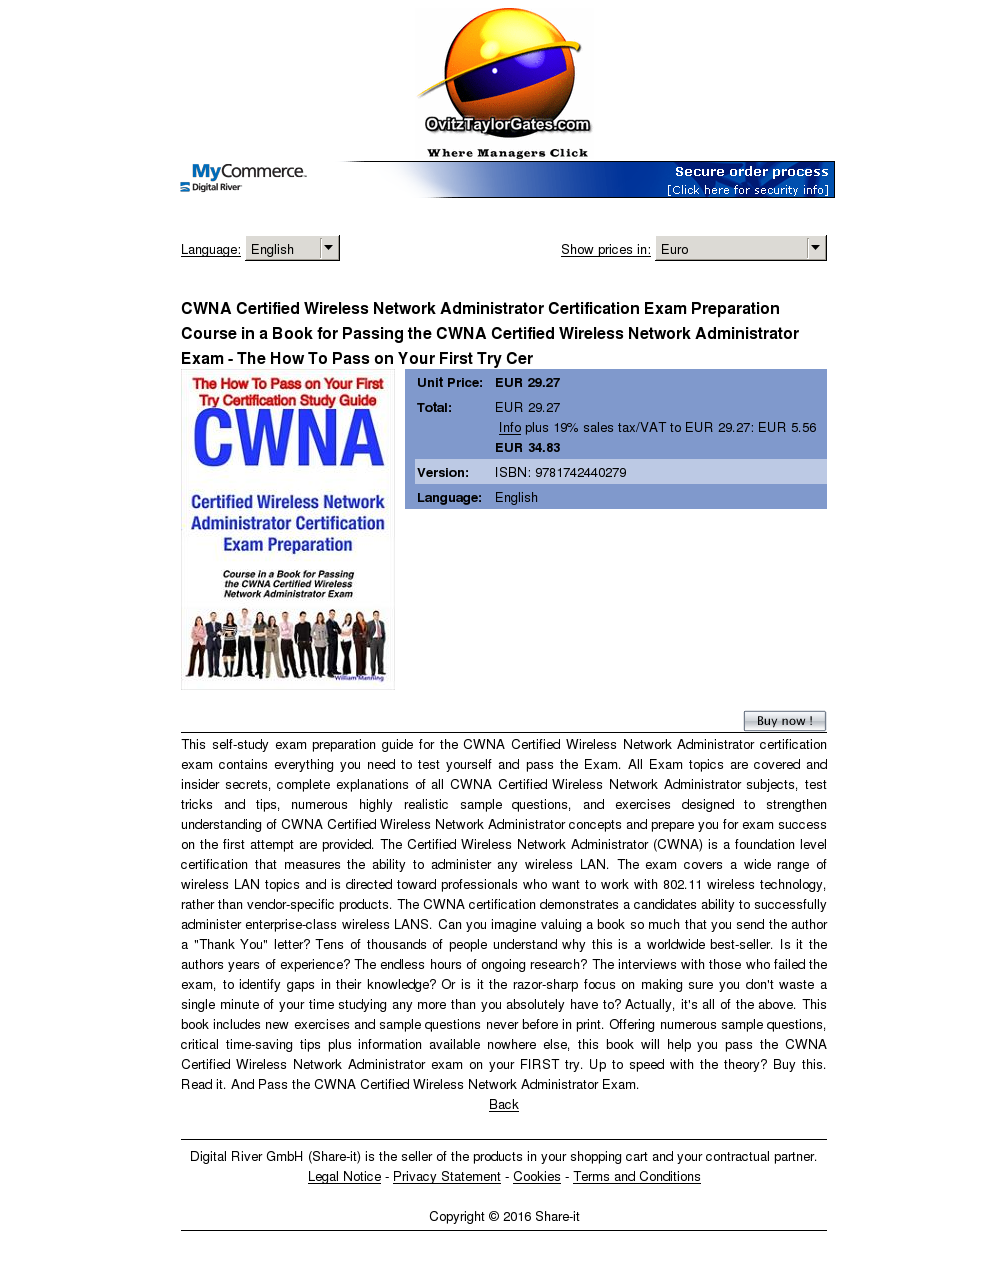 Cwna Certified Wireless Network Administrator Certification Exam Preparation Course Book Passing How Pass Your First Try Cer Free